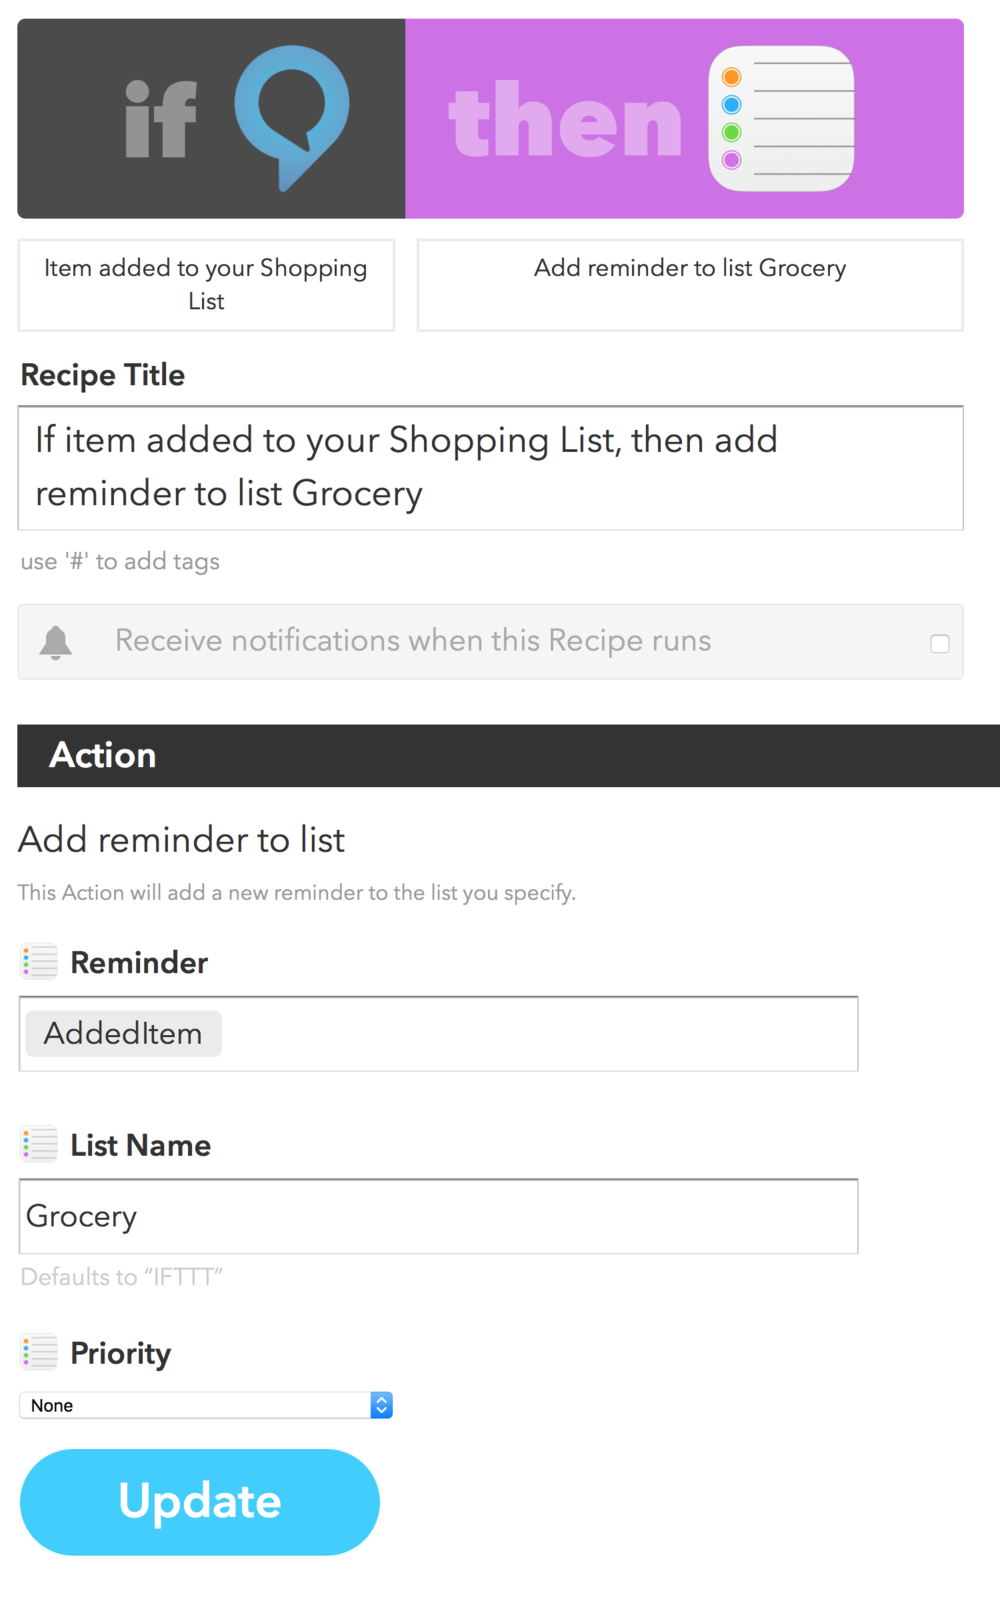 Moving Alexa Shopping List Items to Reminders Grocery List via IFTTT